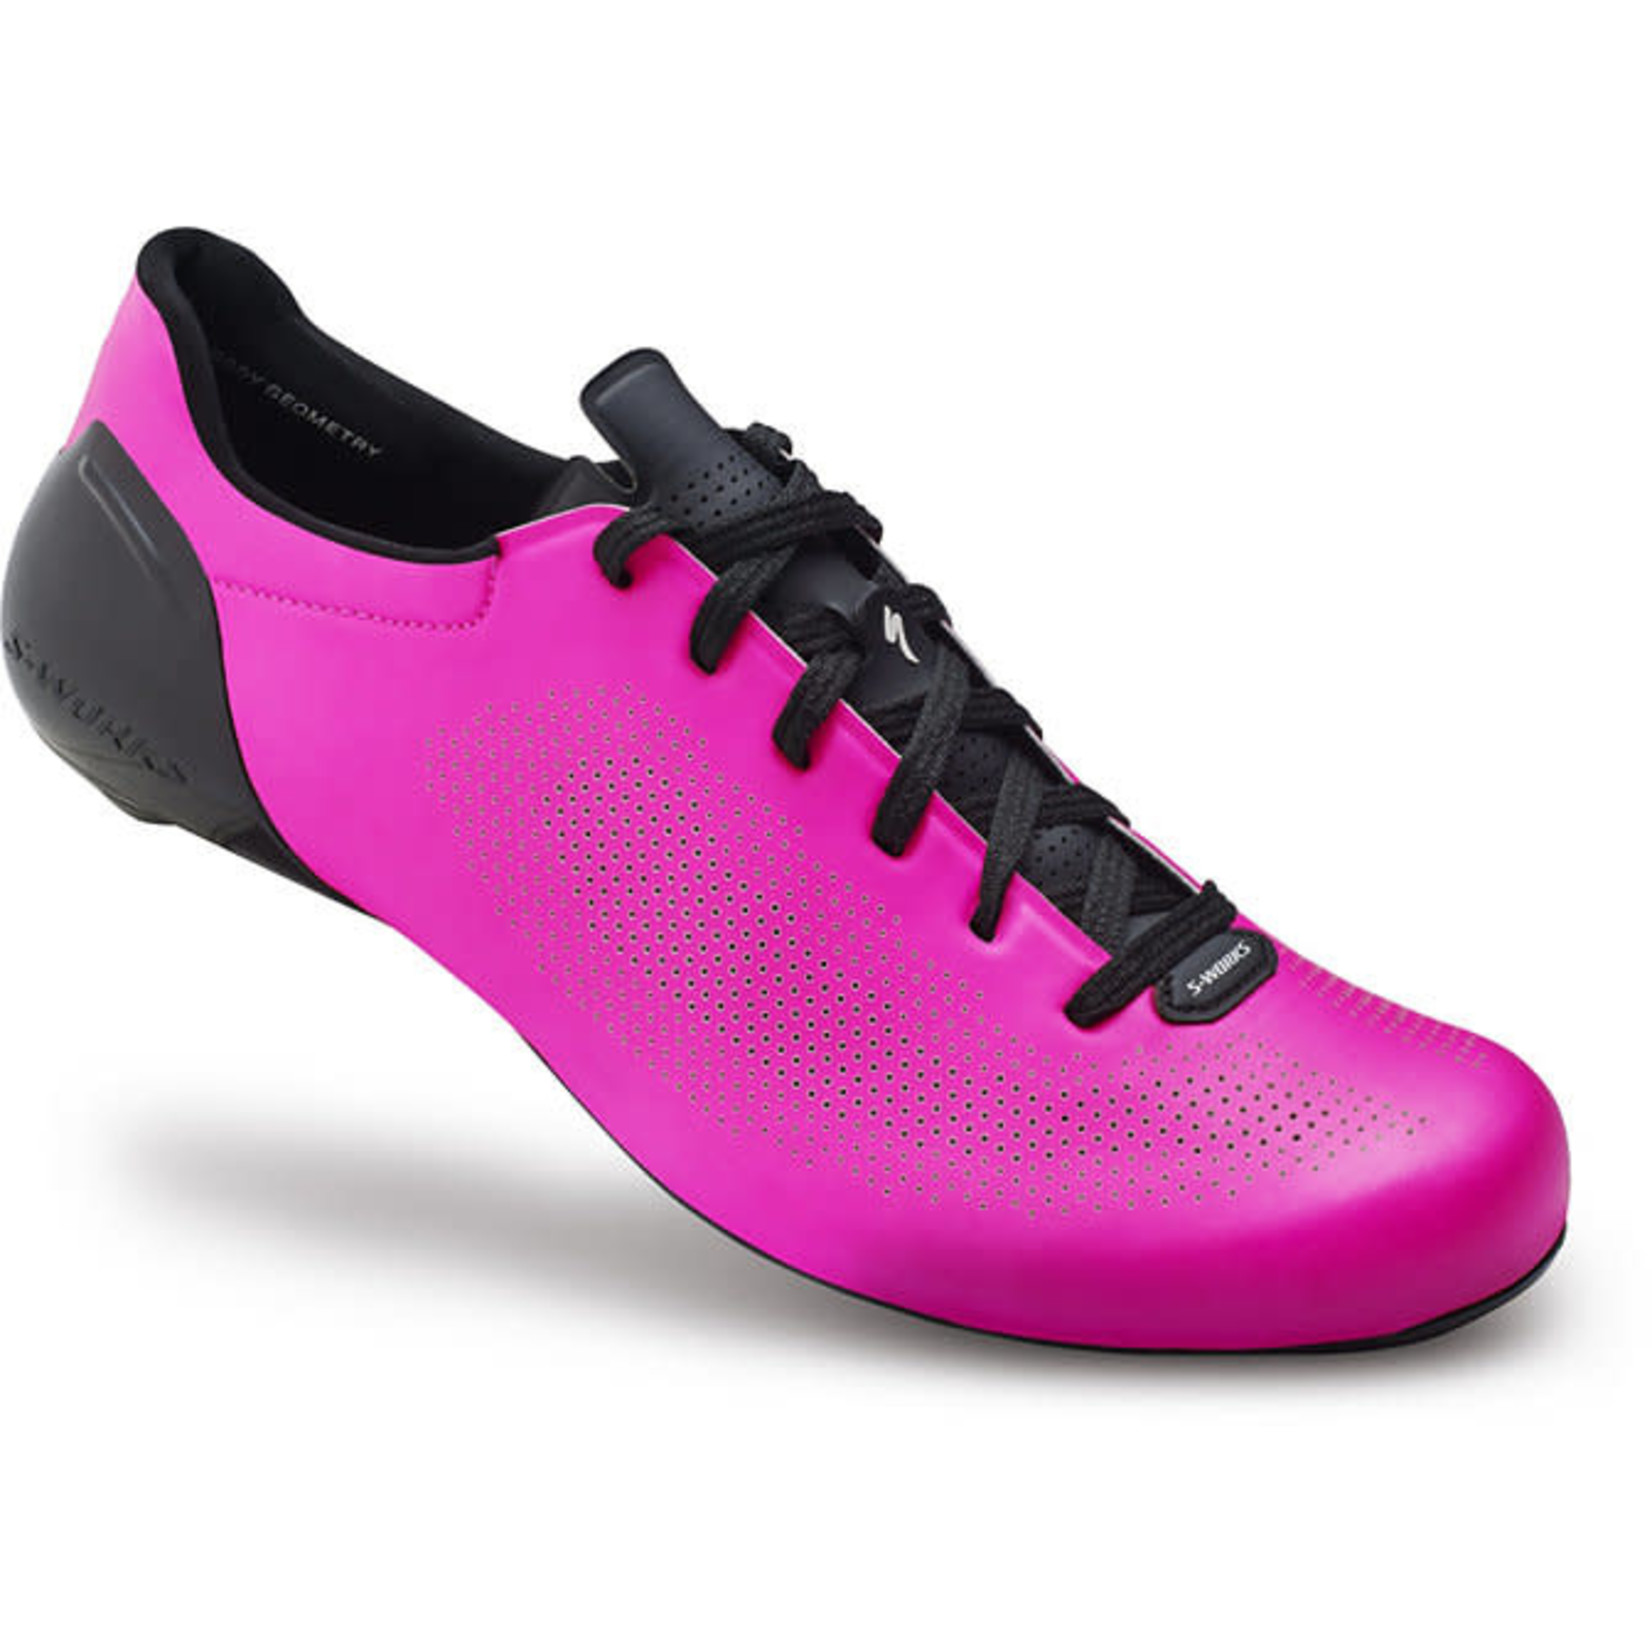 Specialized Specialized S-Works Sub6 Road Shoe Women's, 40, Pink